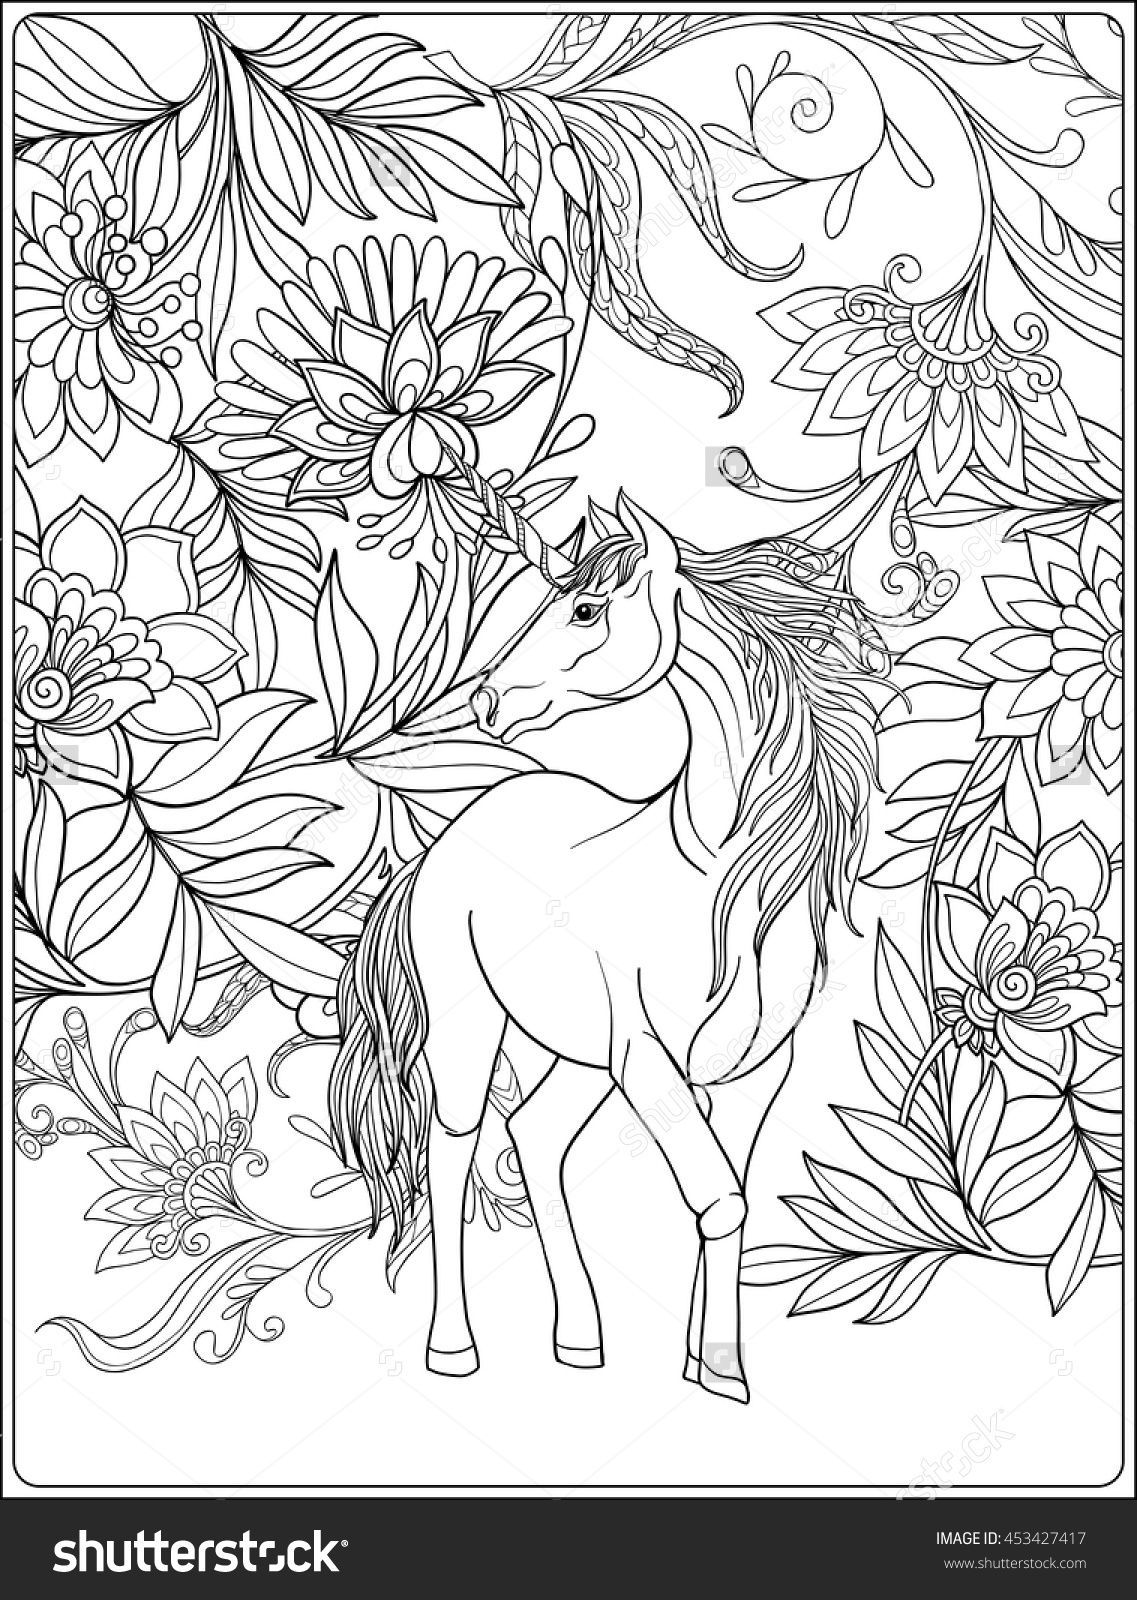 unicorn in magical garden coloring page Shutterstock 453427417 ...